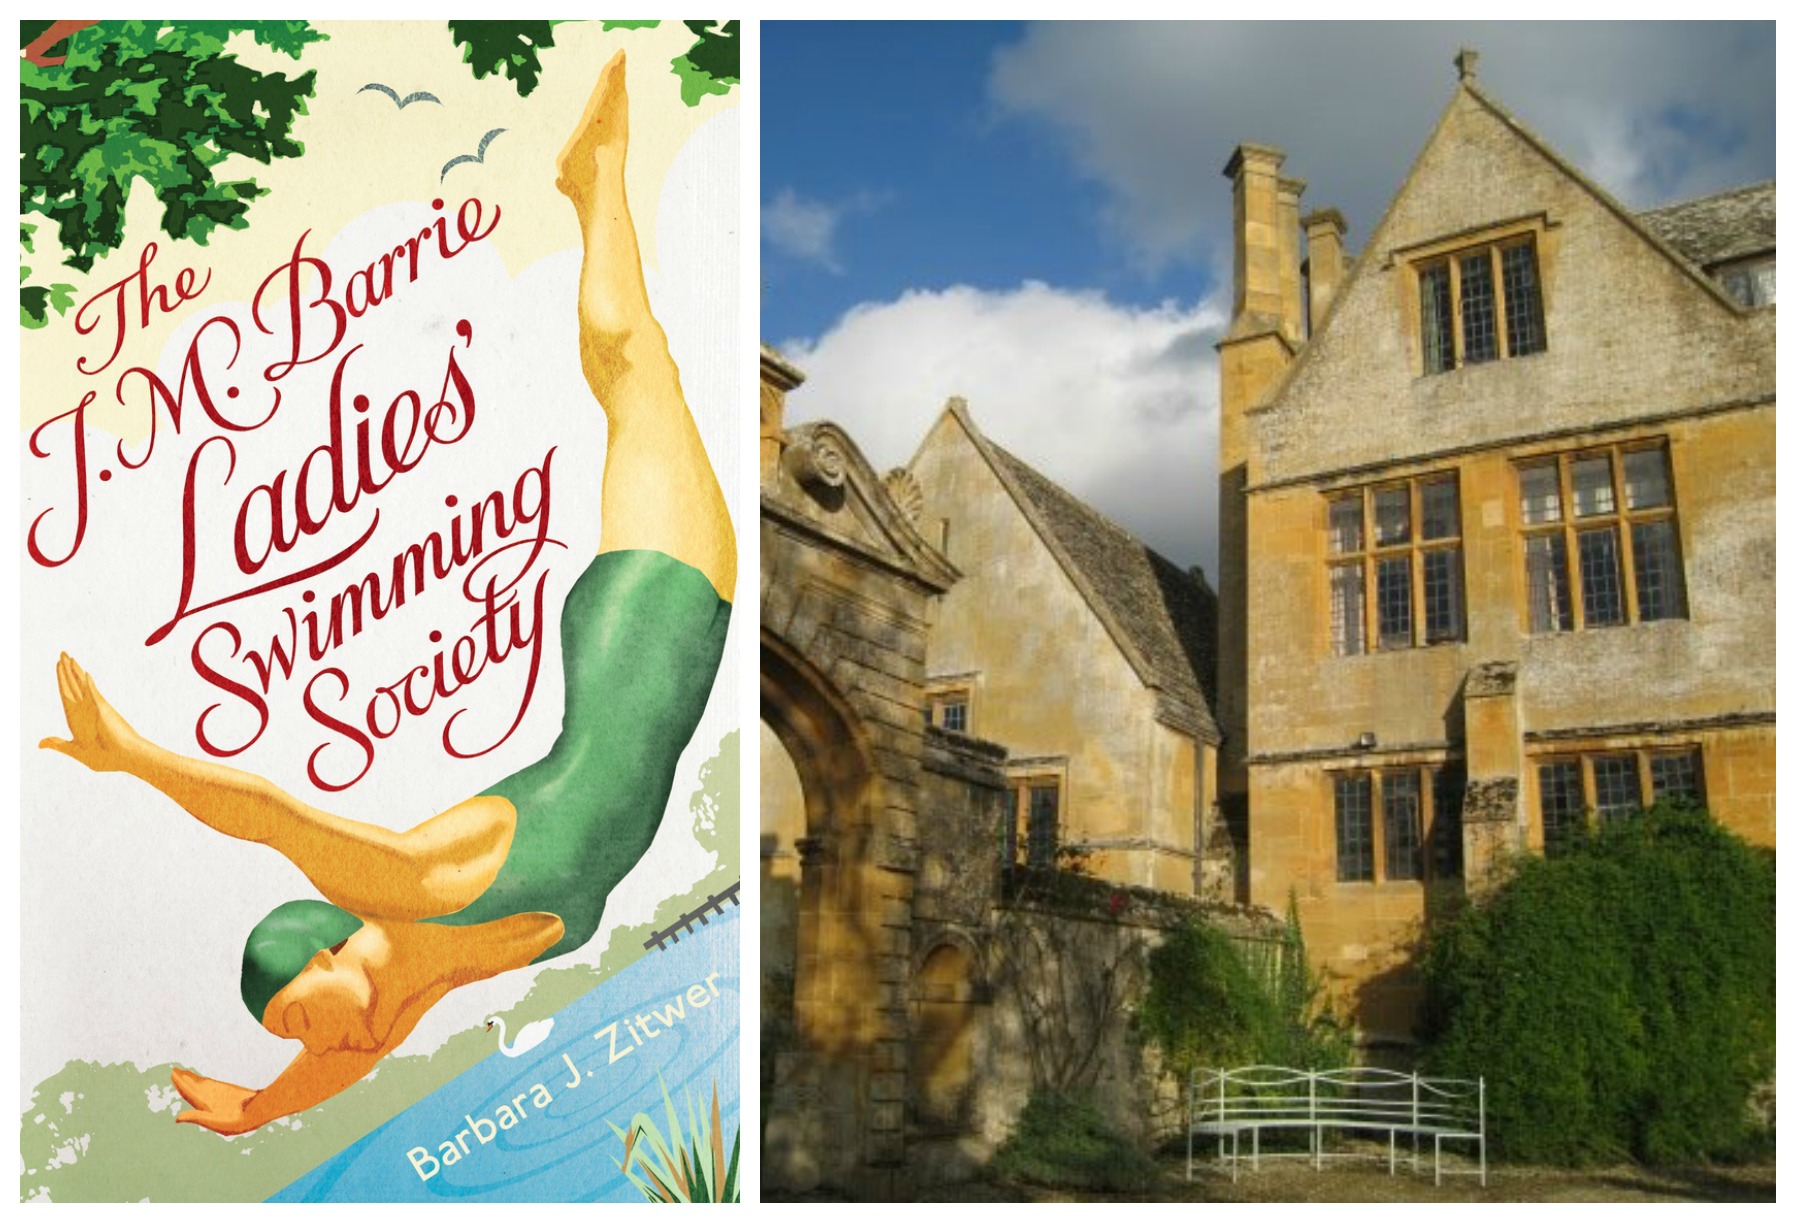 April Book Club: The J.M. Barrie Ladies' Swimming Society